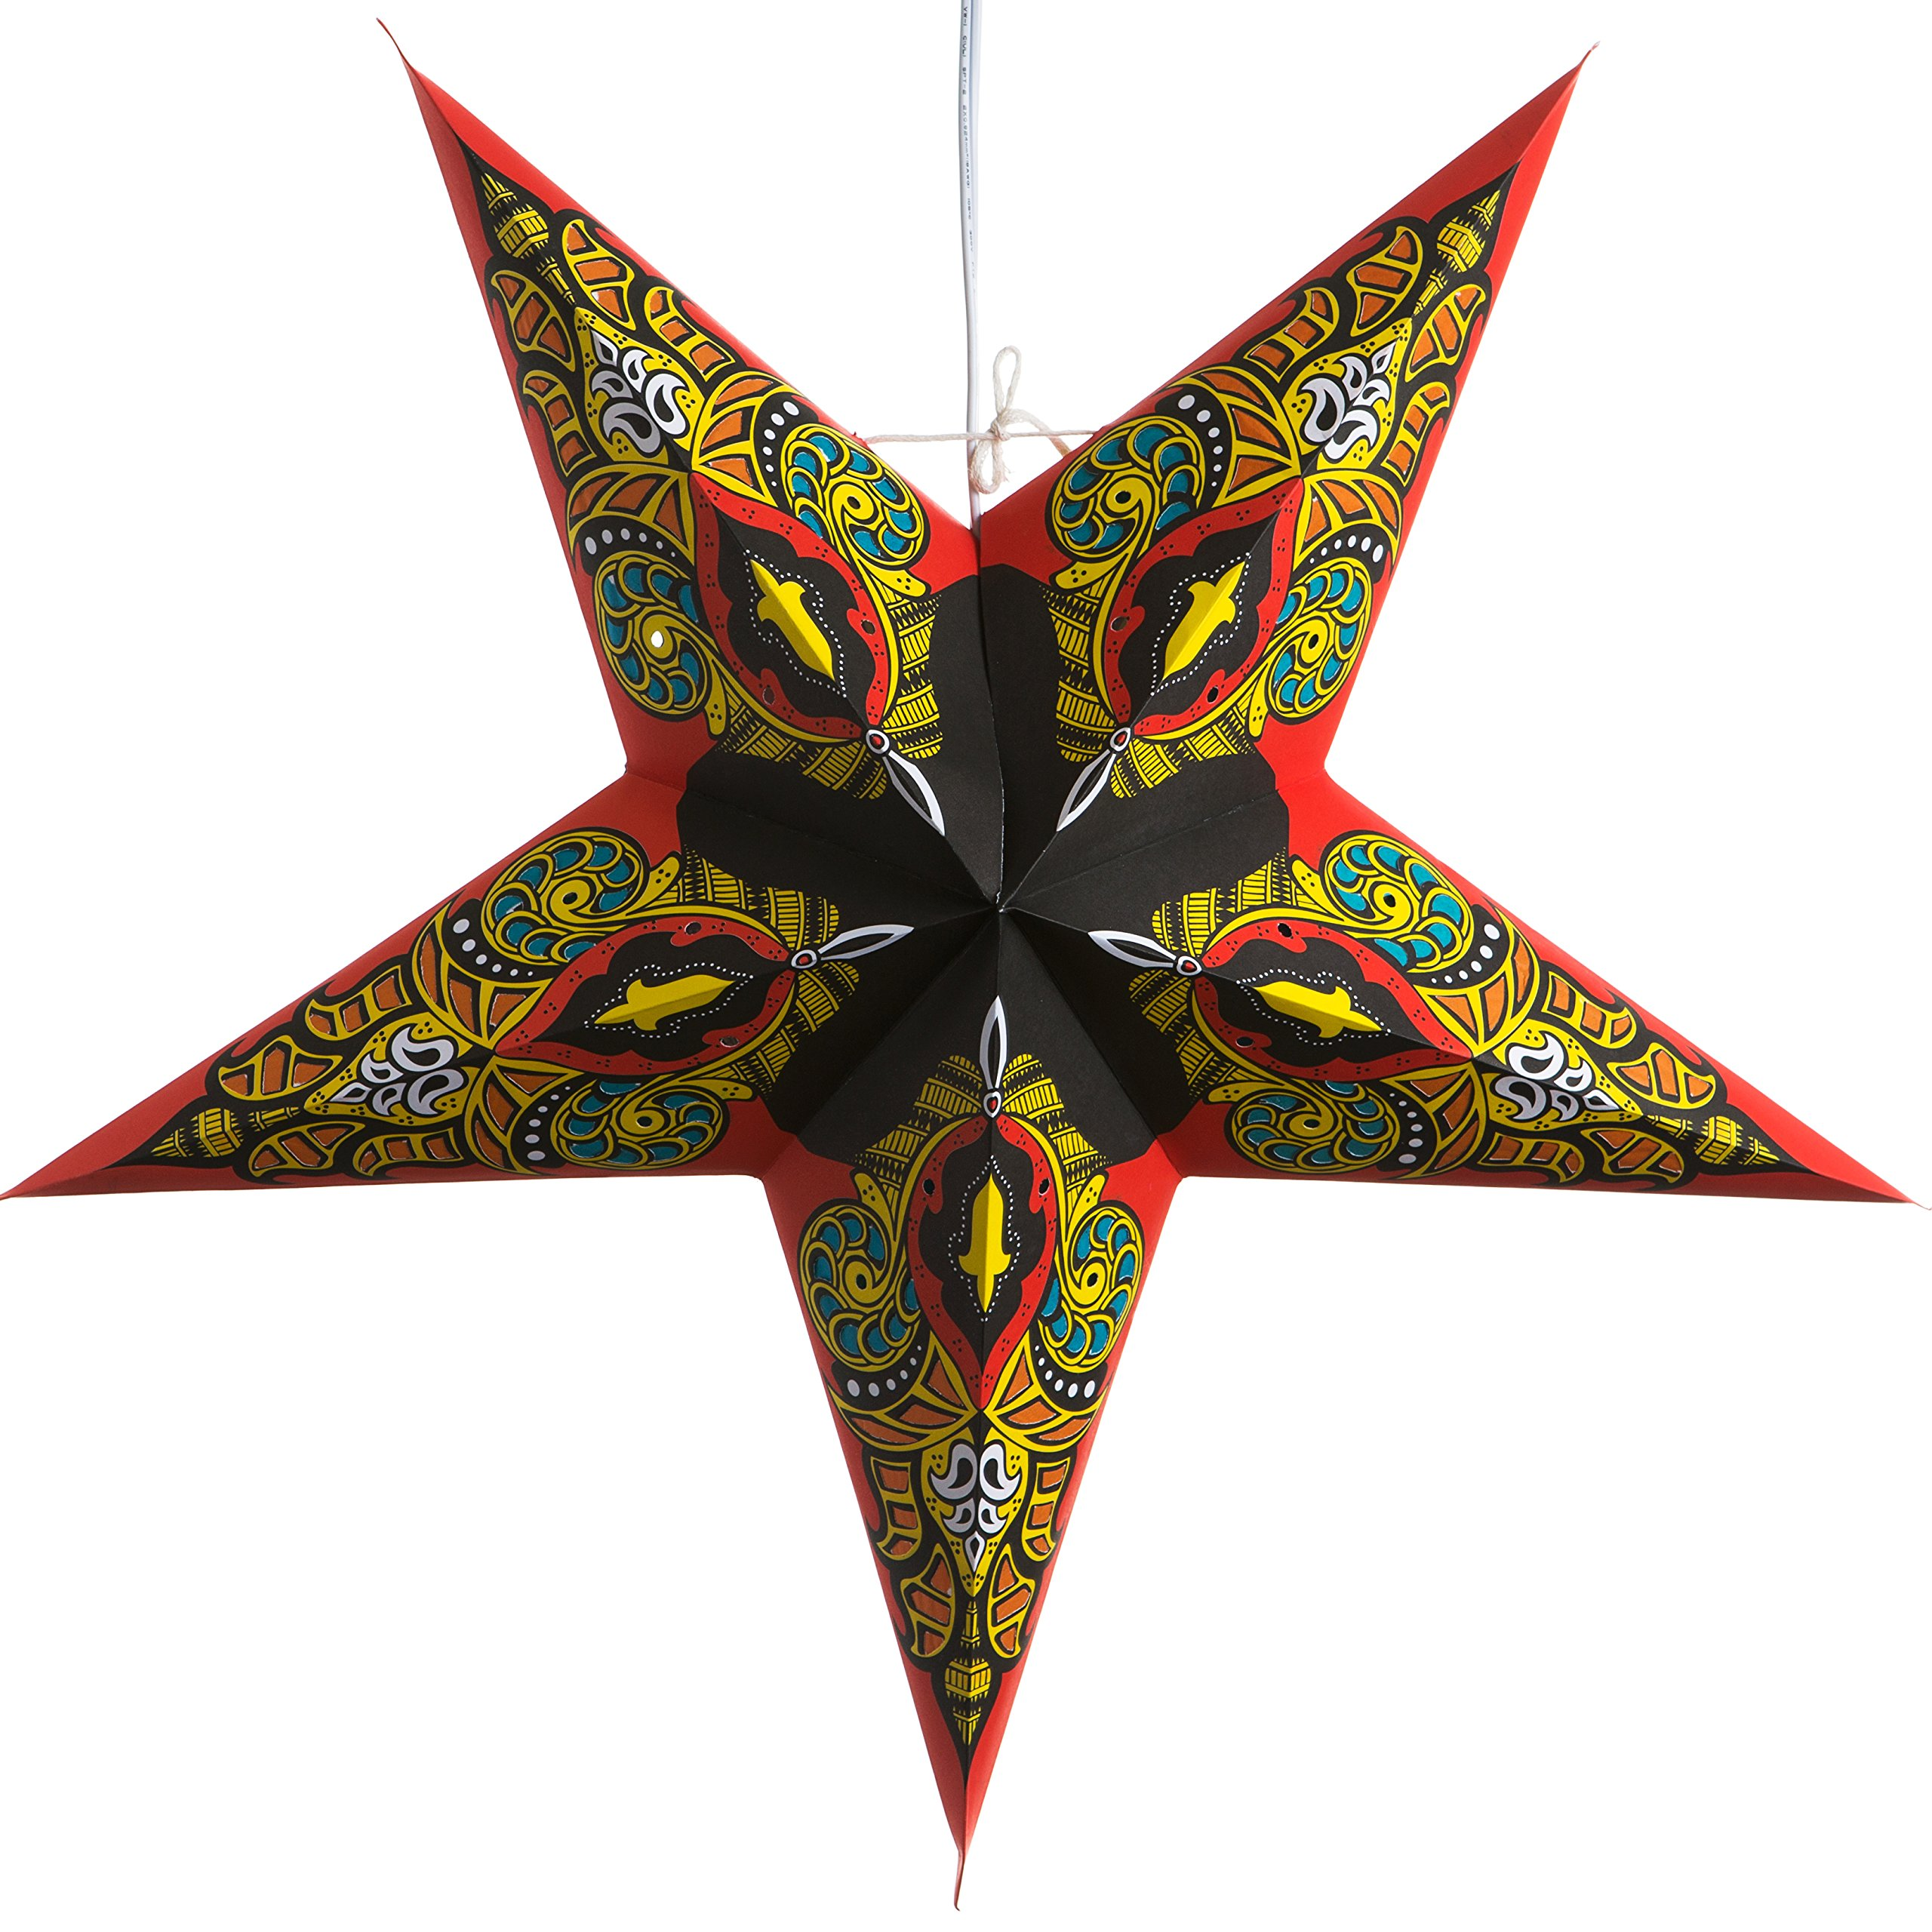 Red Mango Paper Star Lantern with 12 Foot Power Cord Included